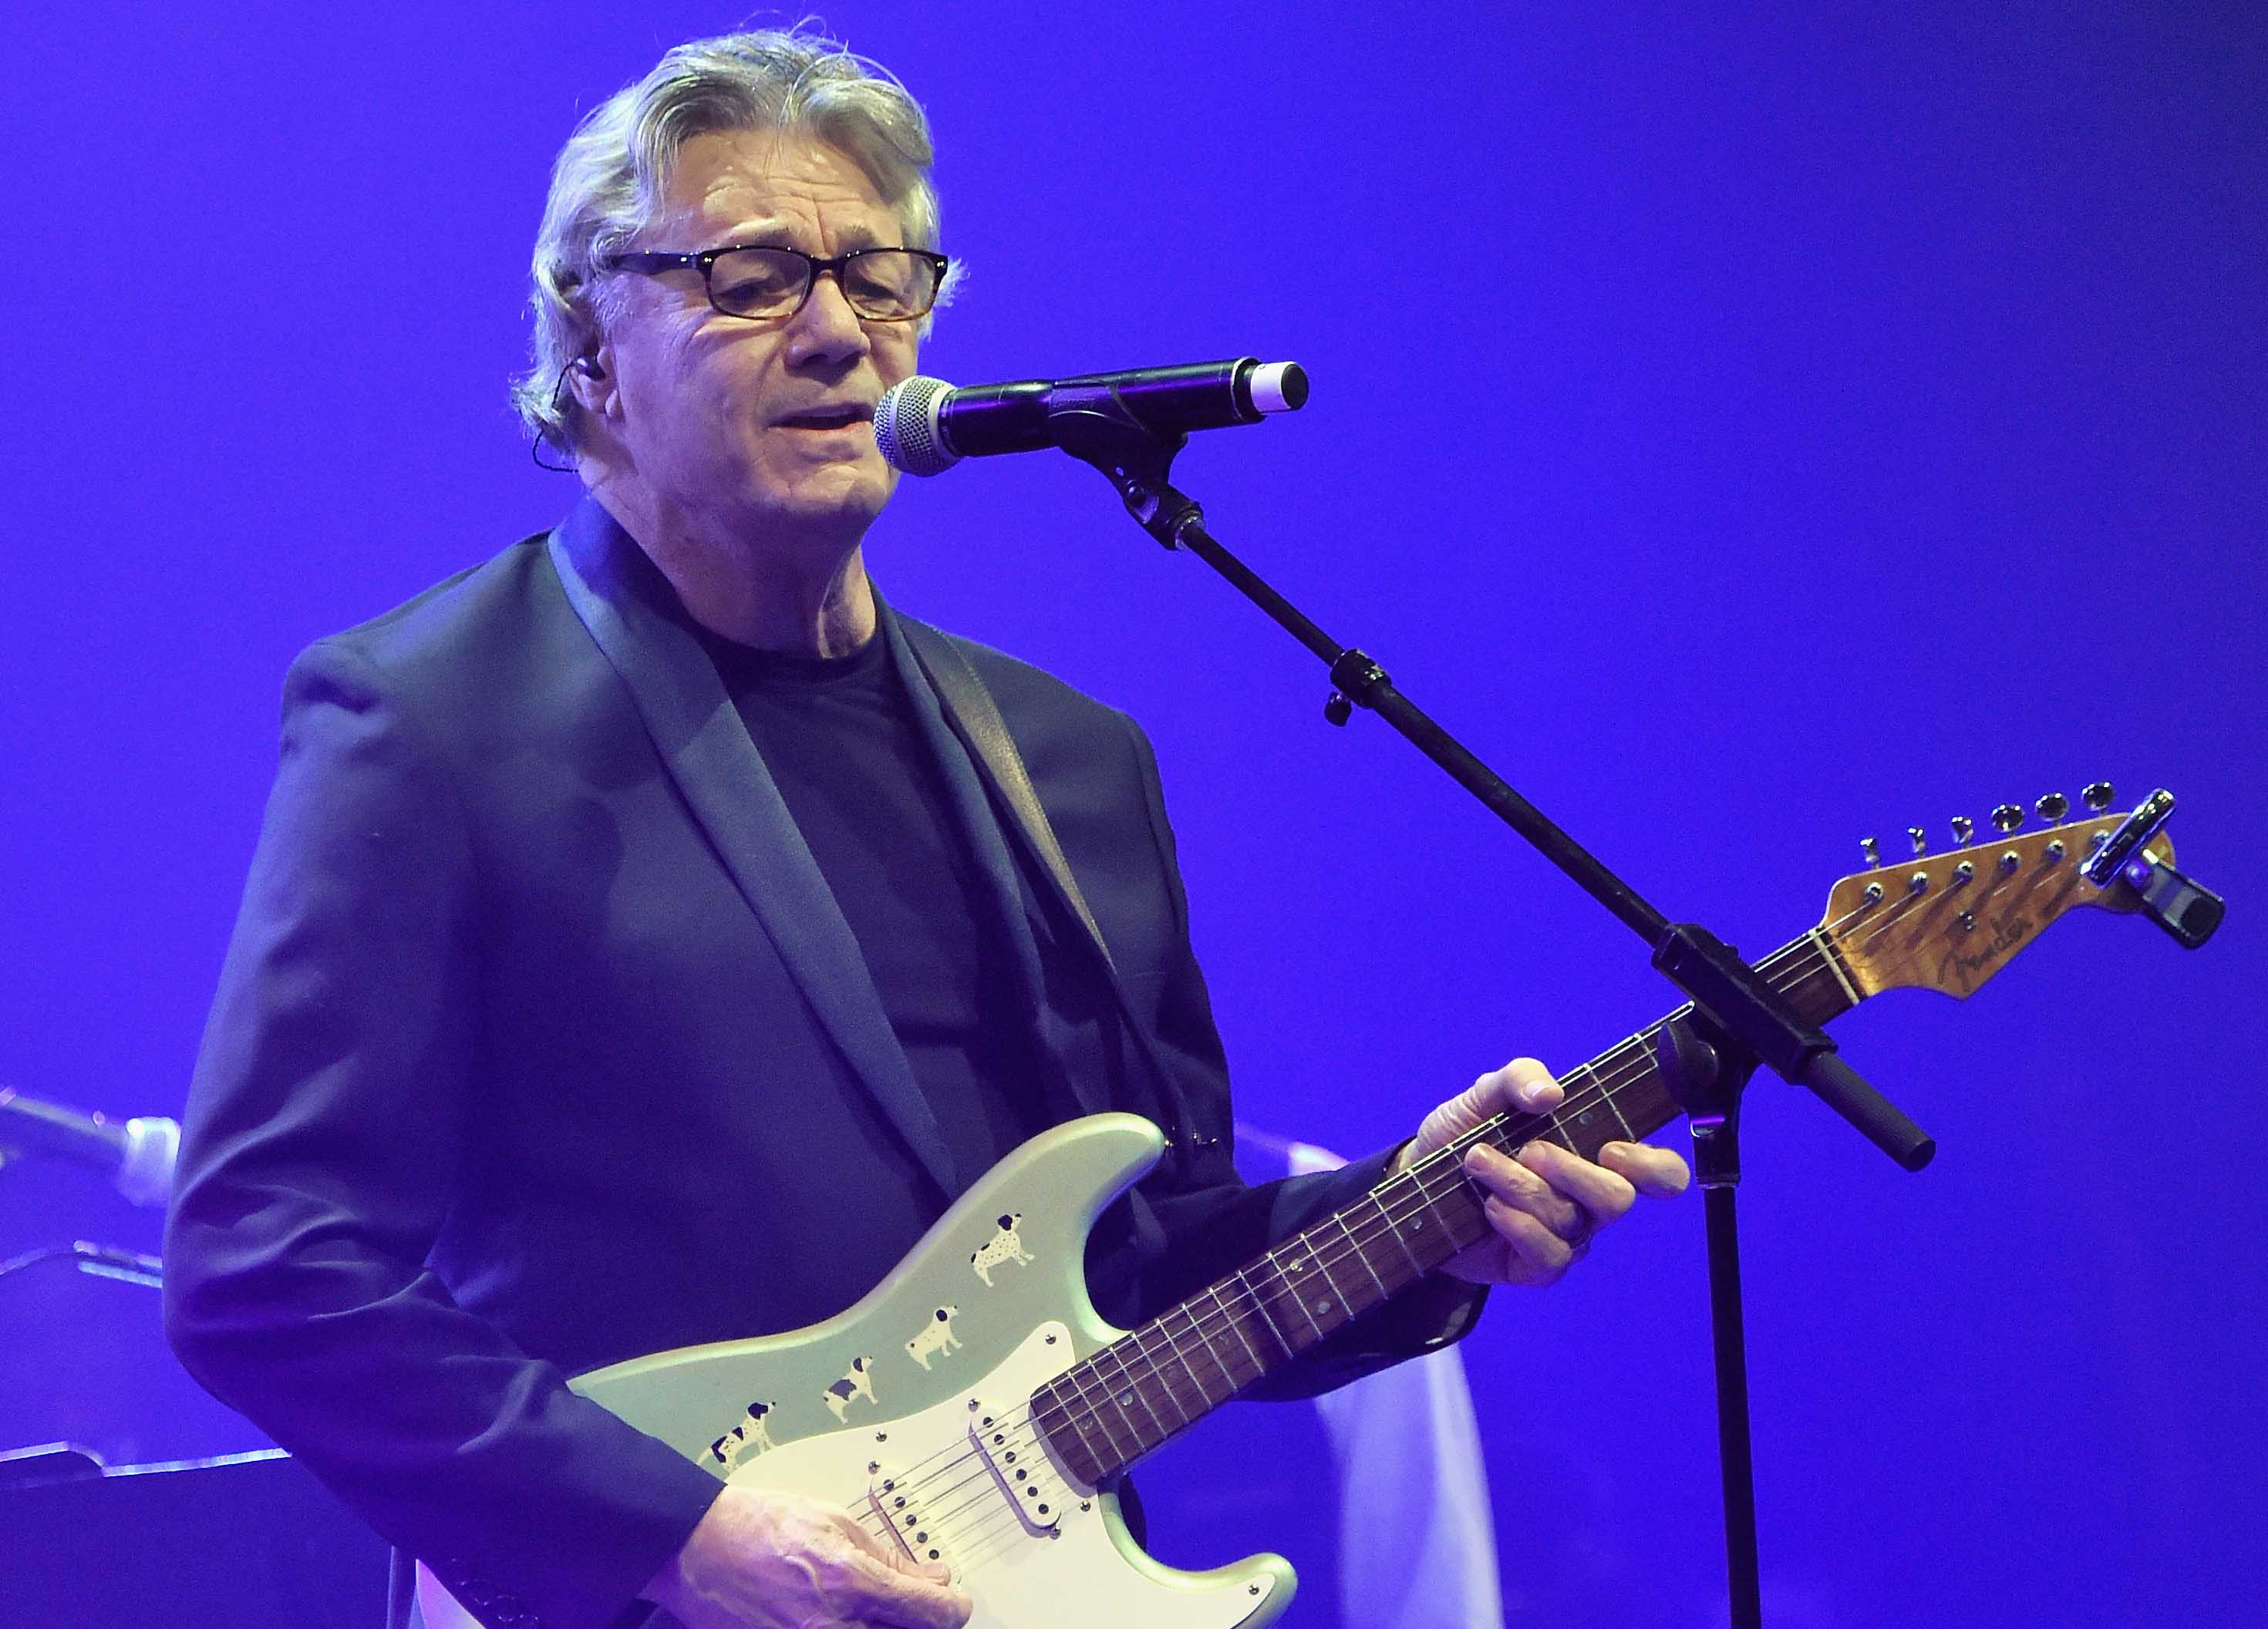 Steve Miller Slams Rock And Roll Hall Of Fame At Induction Ceremony